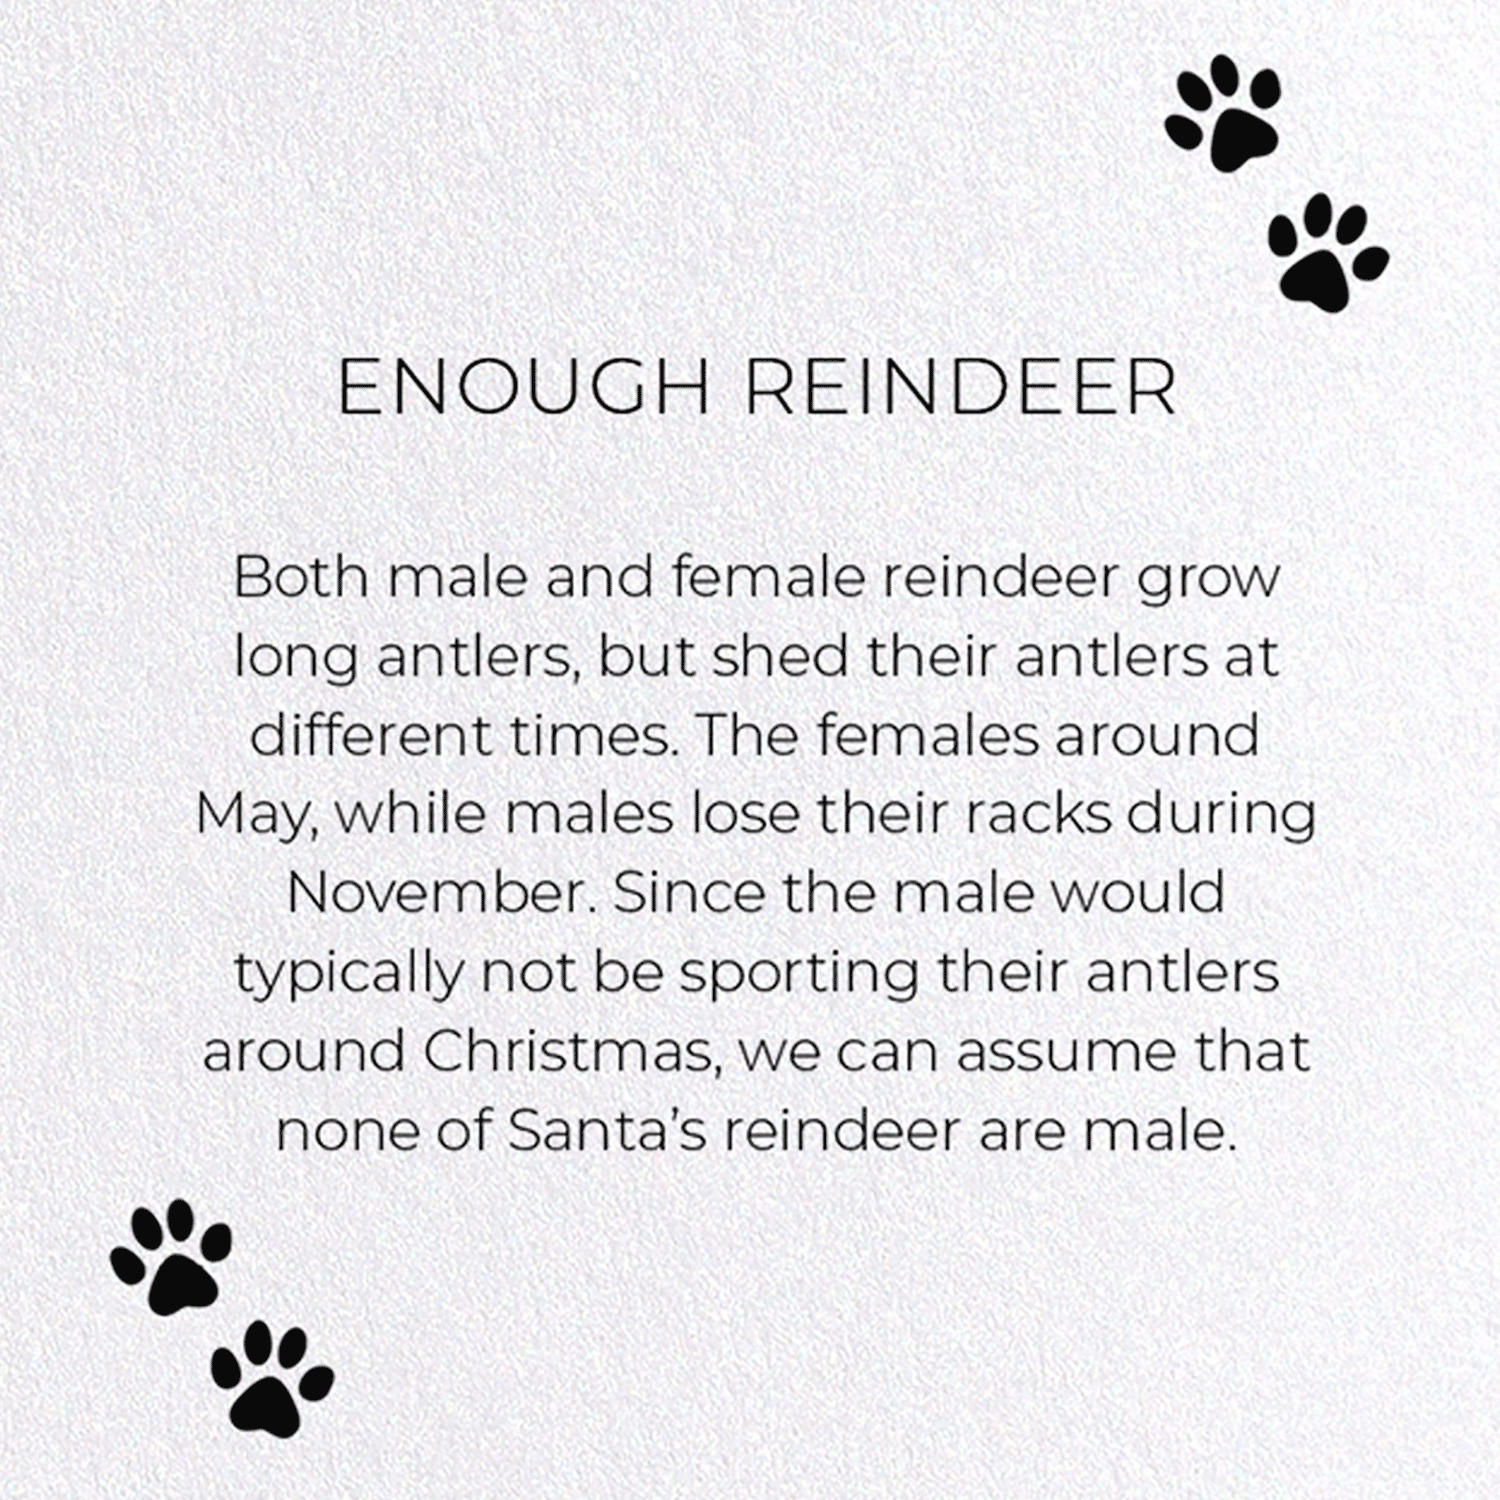 ENOUGH REINDEER